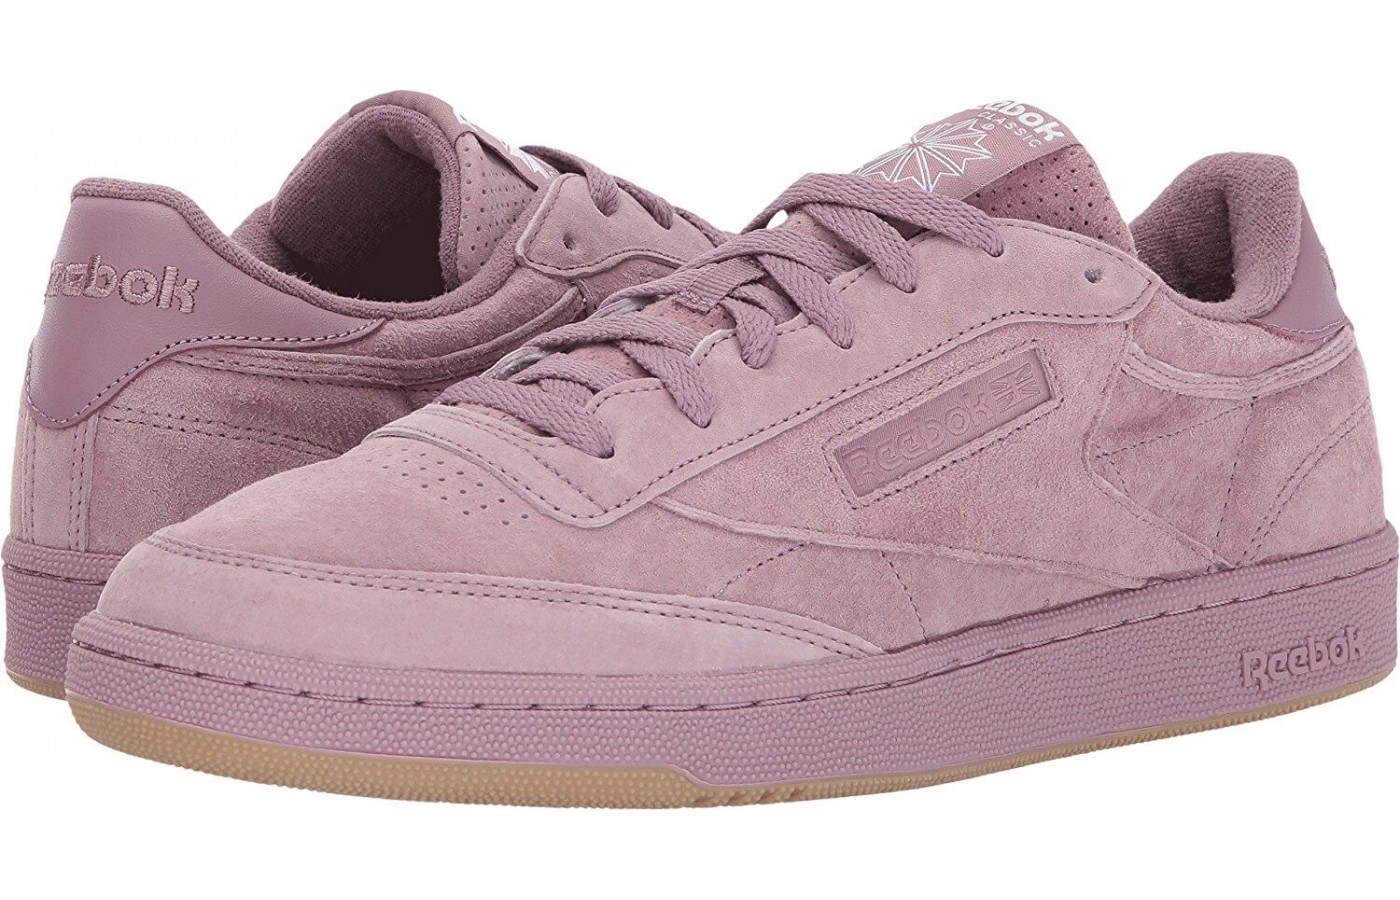 The Reebok Club C 85 in a light pink colorway